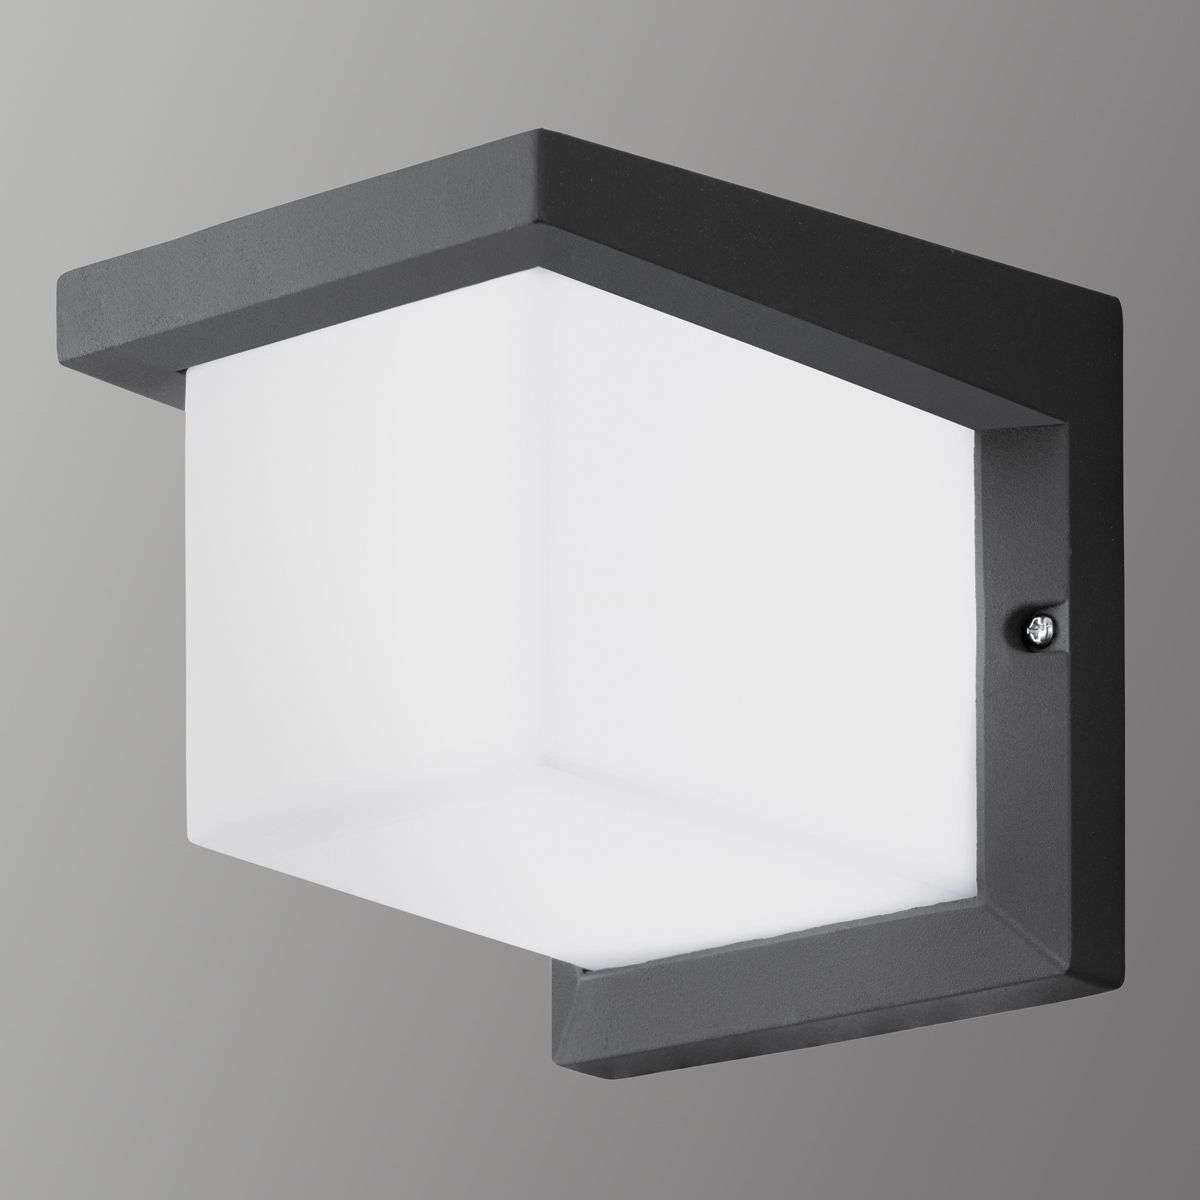 Acquista applique led da esterno desella a forma di cubo - Altezza applique ...